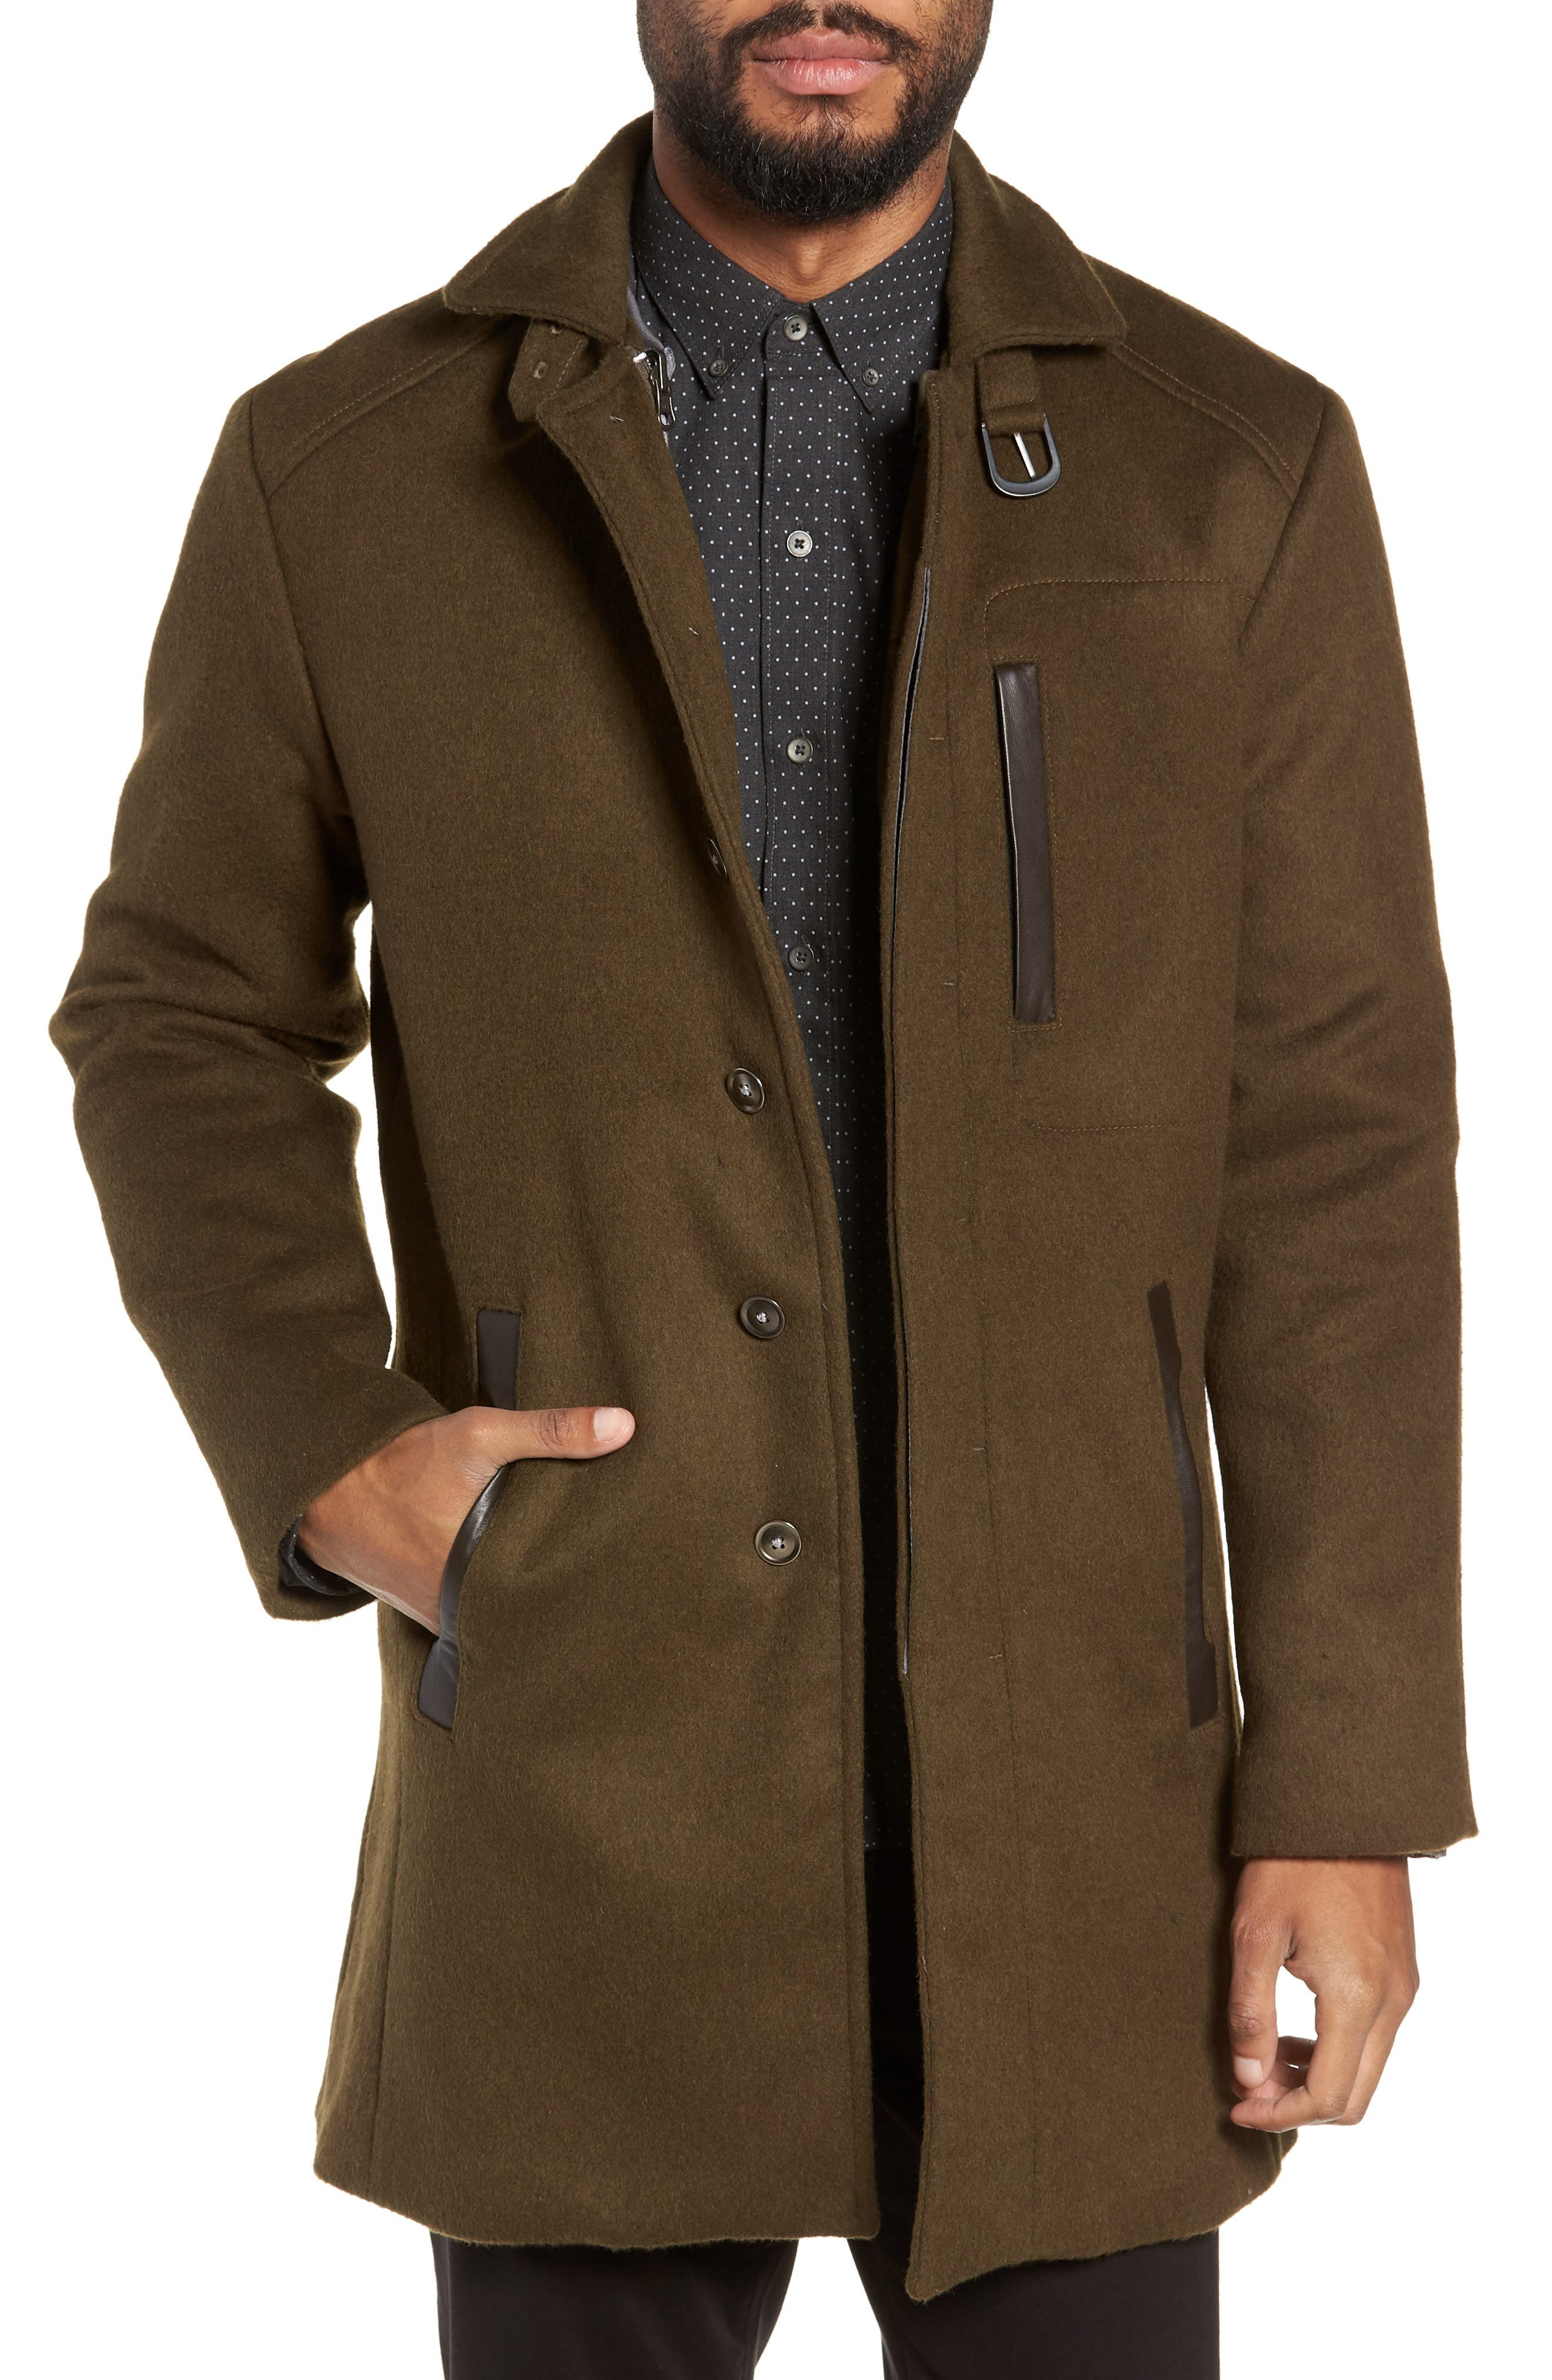 Kilo 3-in-1 Peacoat with Removable Quilted Jacket,                         Main,                         color, OLIVE